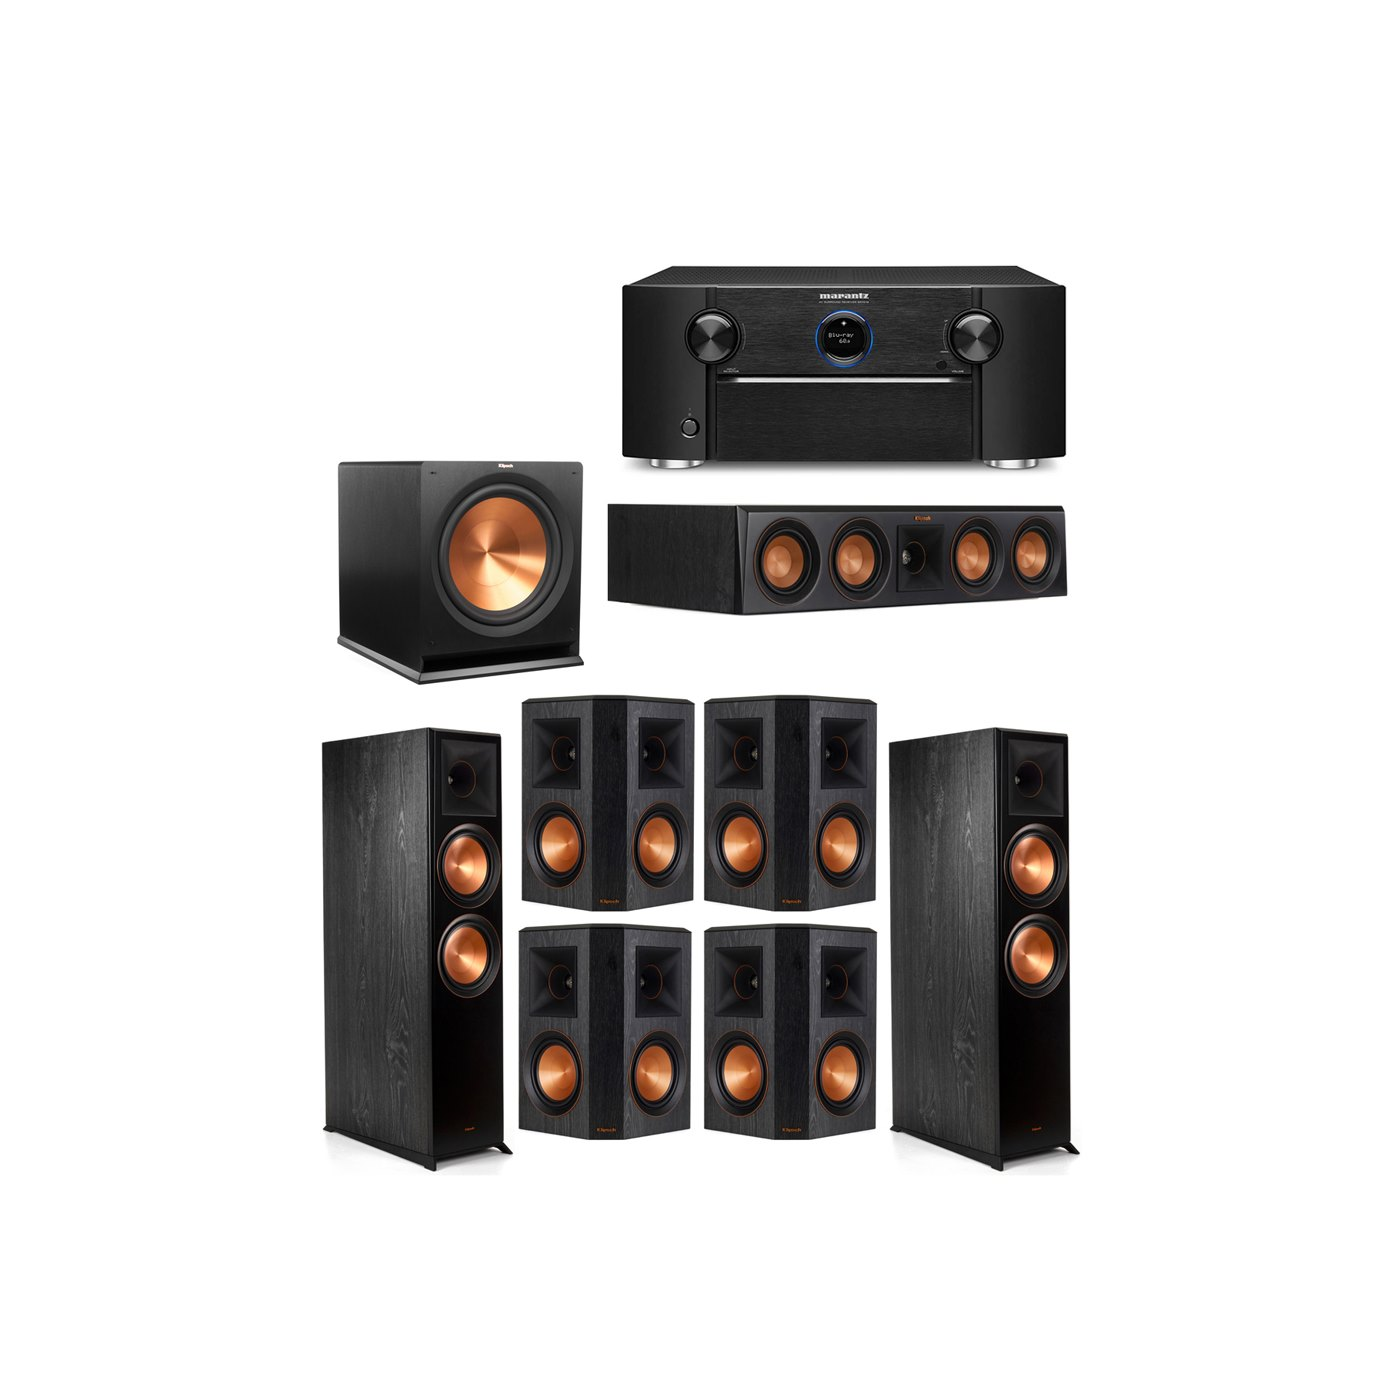 Klipsch 7.1 System with 2 RP-8000F Floorstanding Speakers, 1 Klipsch RP-404C Center Speaker, 4 Klipsch RP-502S Surround Speakers, 1 Klipsch R-115SW Subwoofer, 1 Marantz SR7012 A/V Receiver